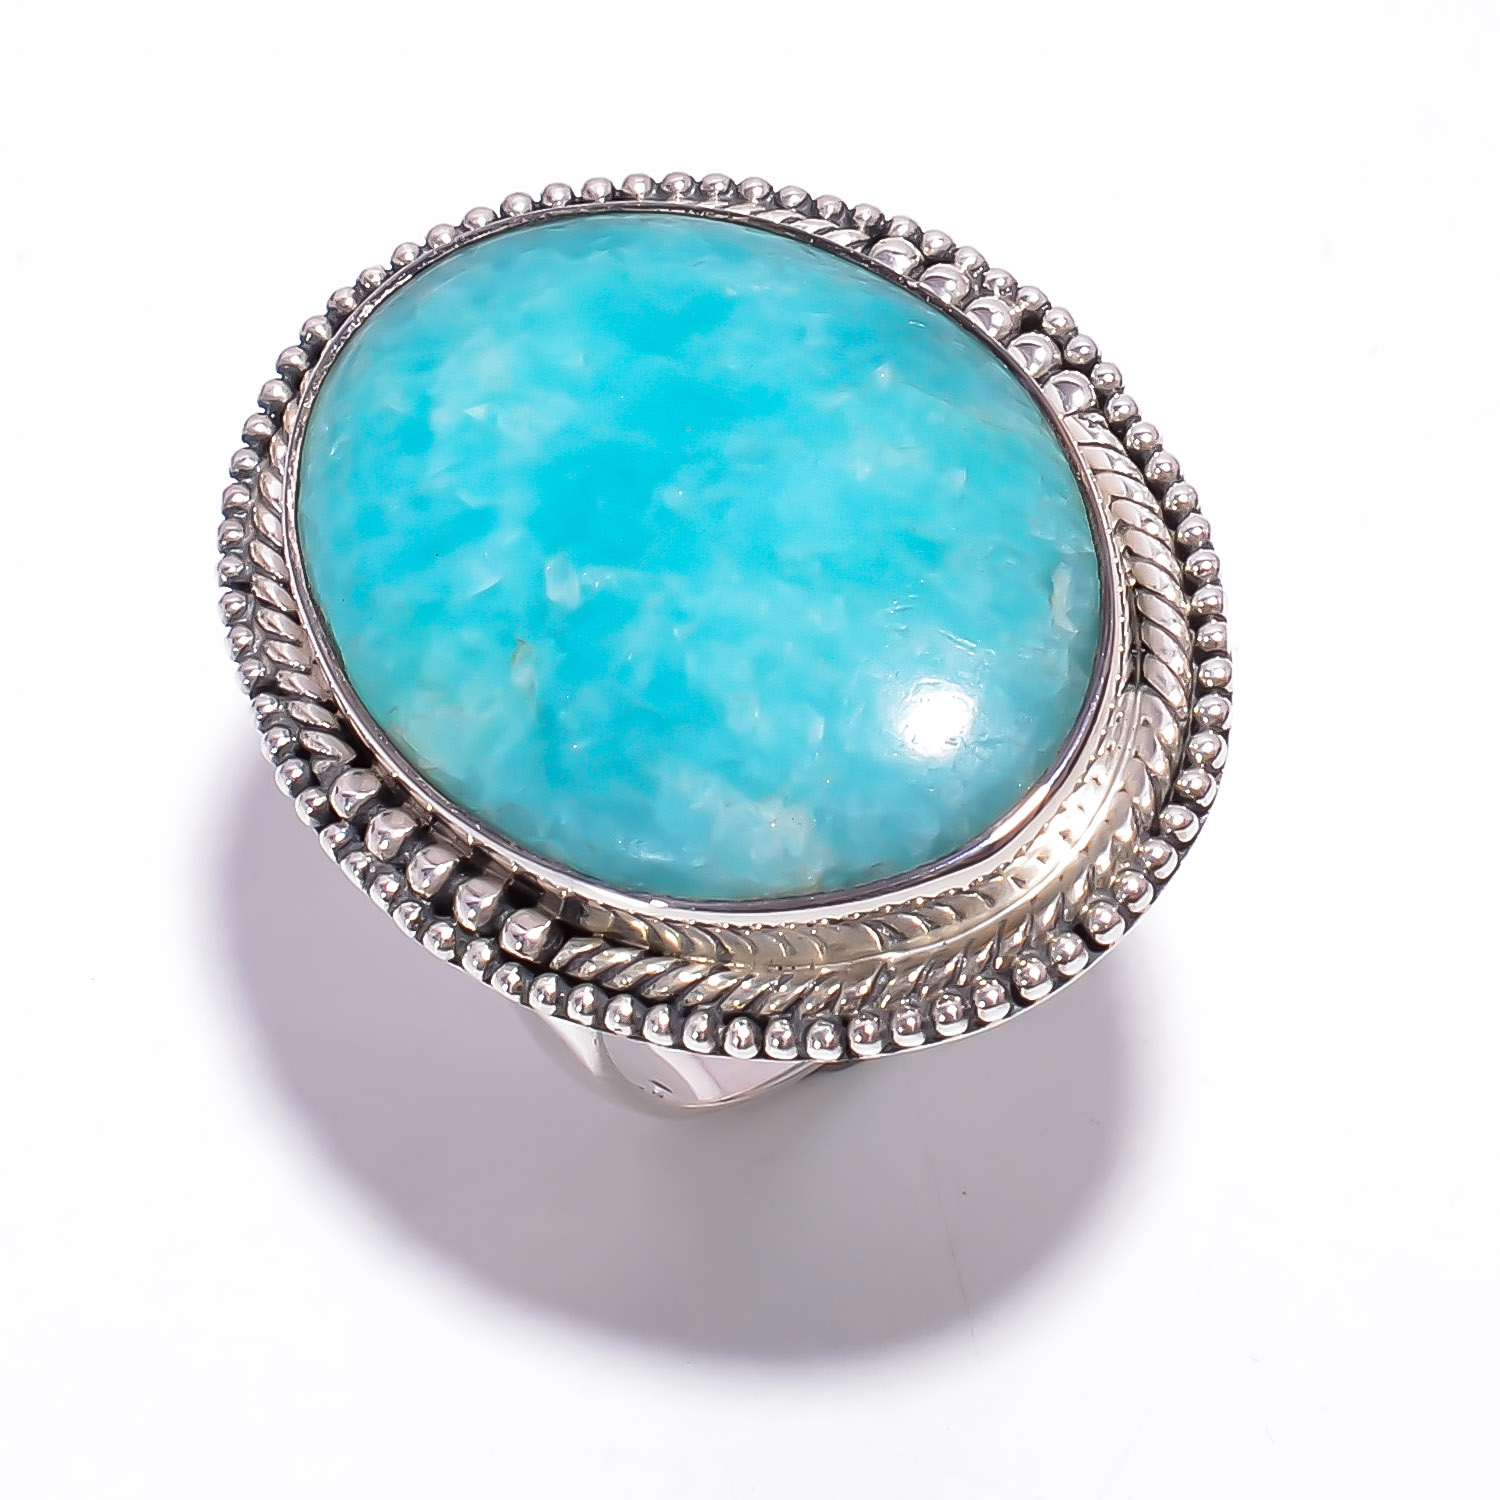 Amazonite Gemstone 925 Sterling Silver Ring Size US 8.5